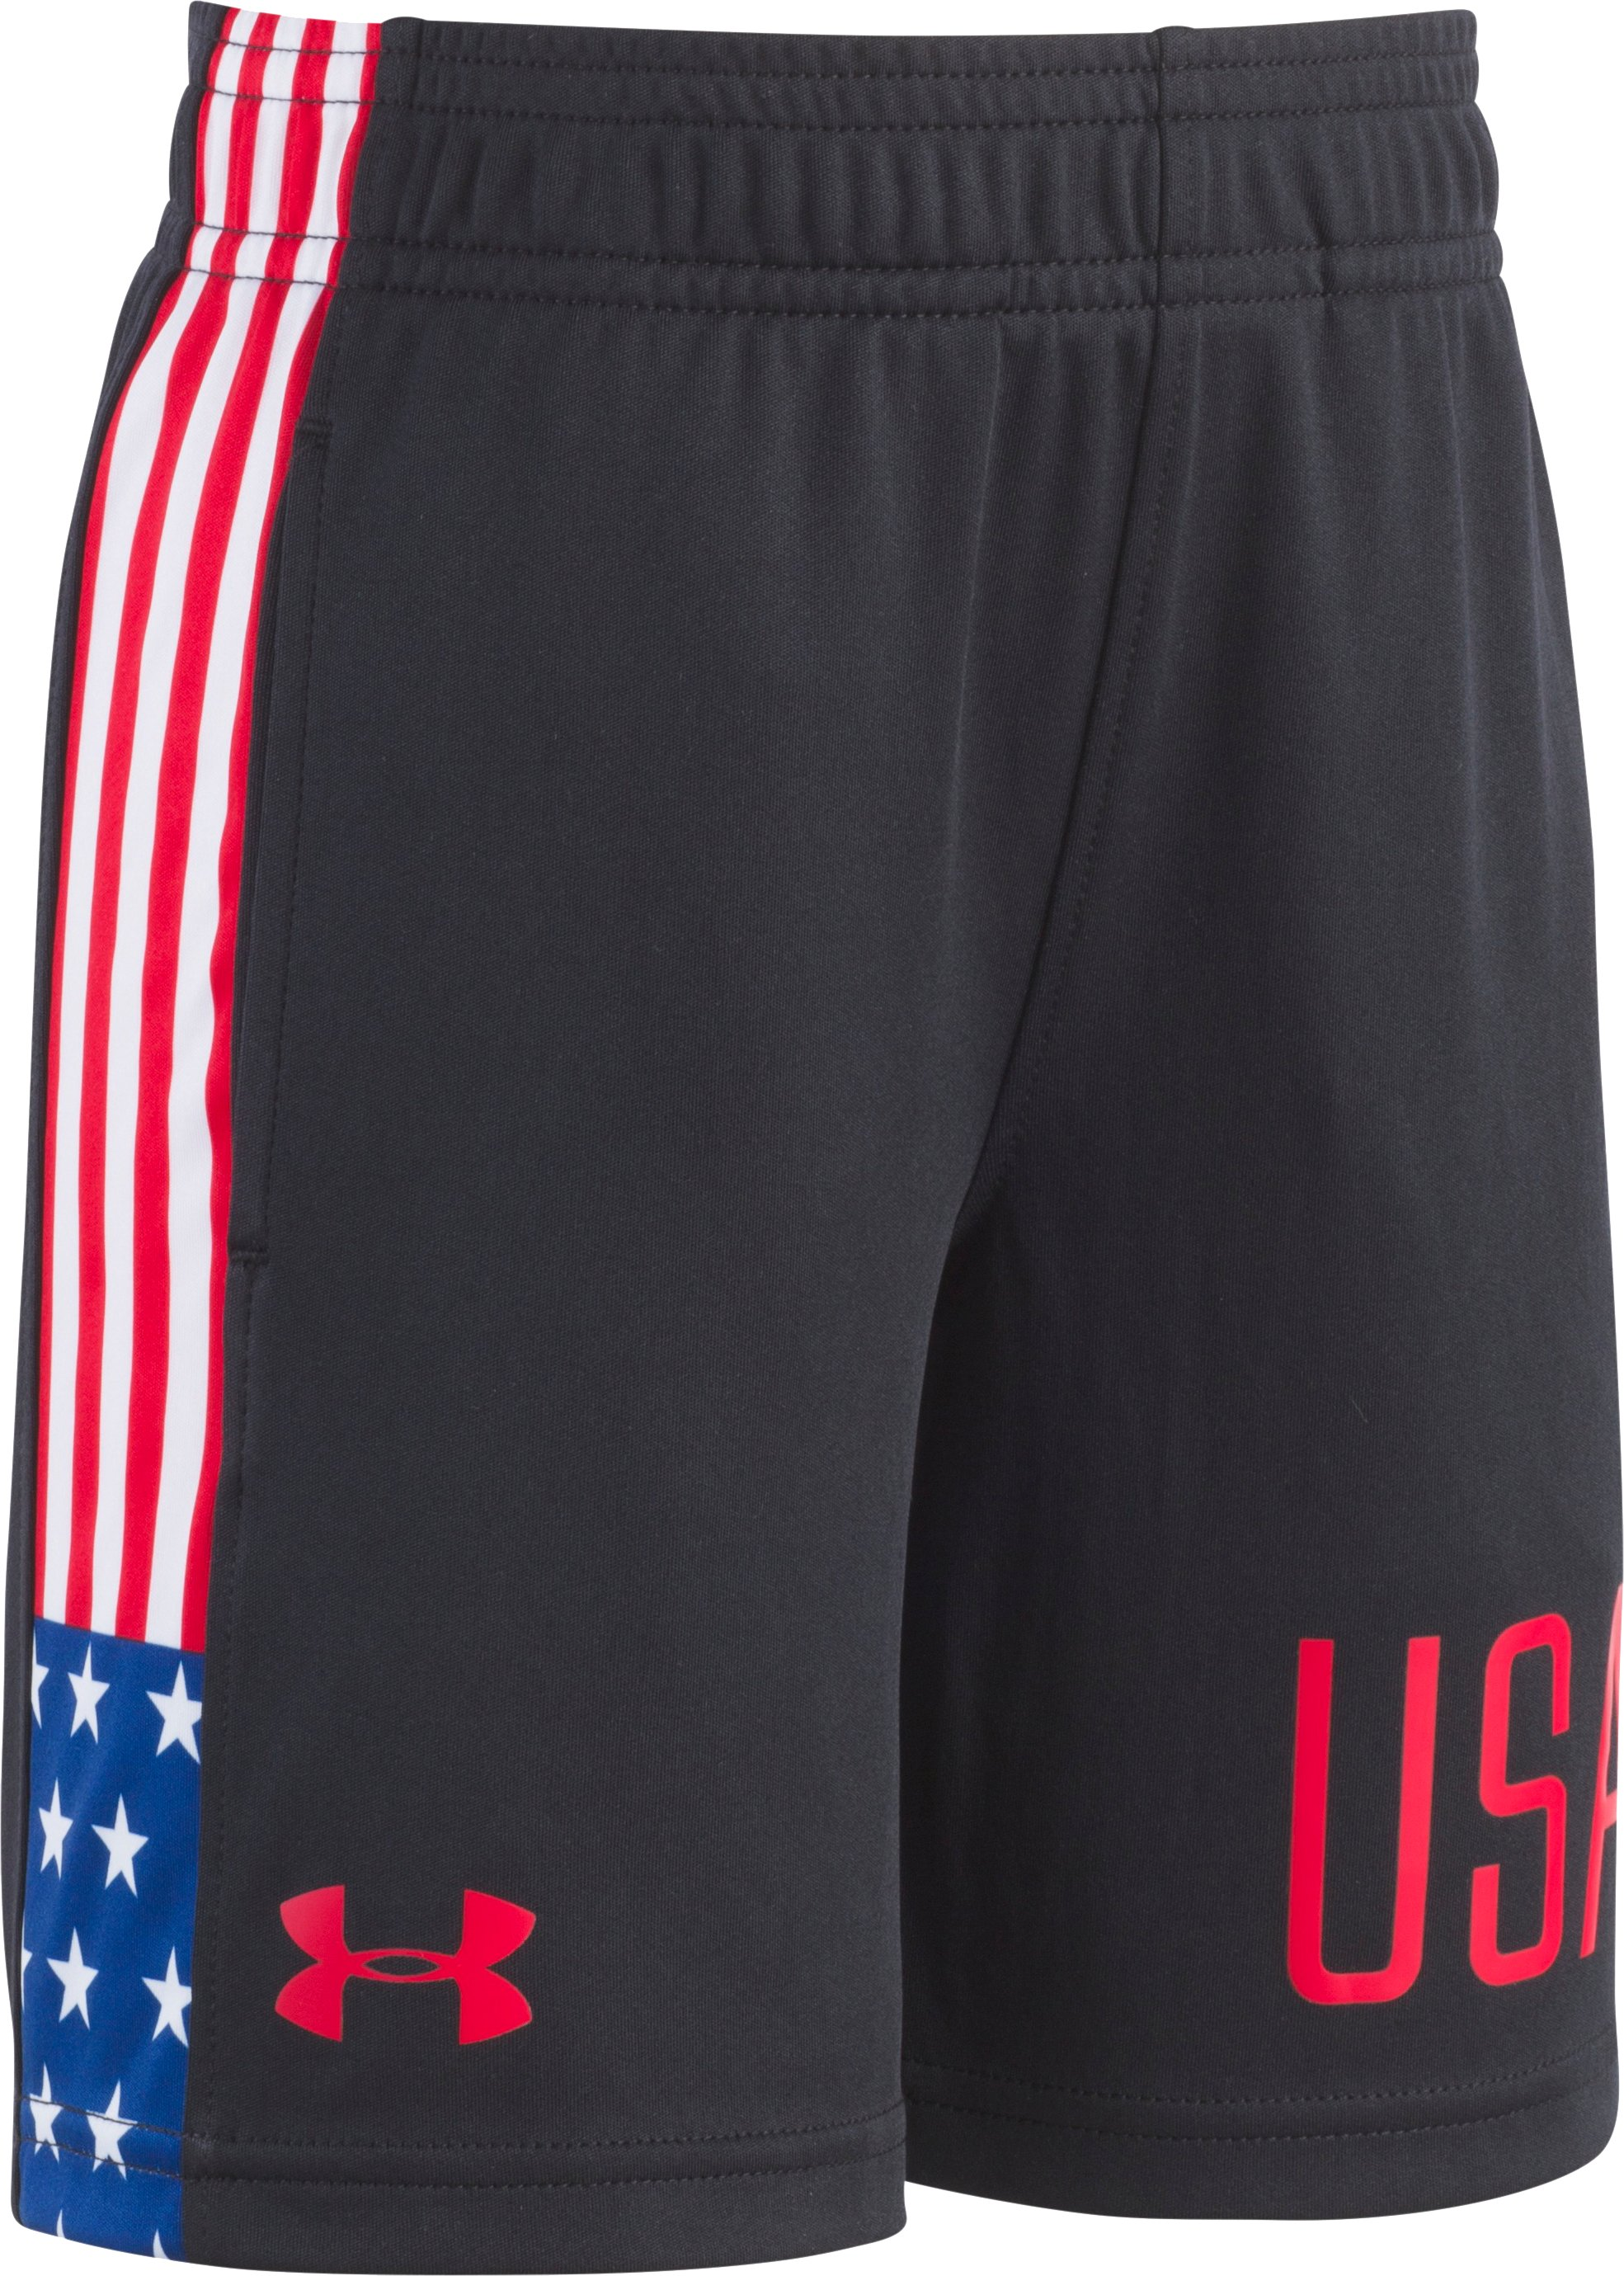 Boys' Infant UA USA Shorts, Black , Laydown